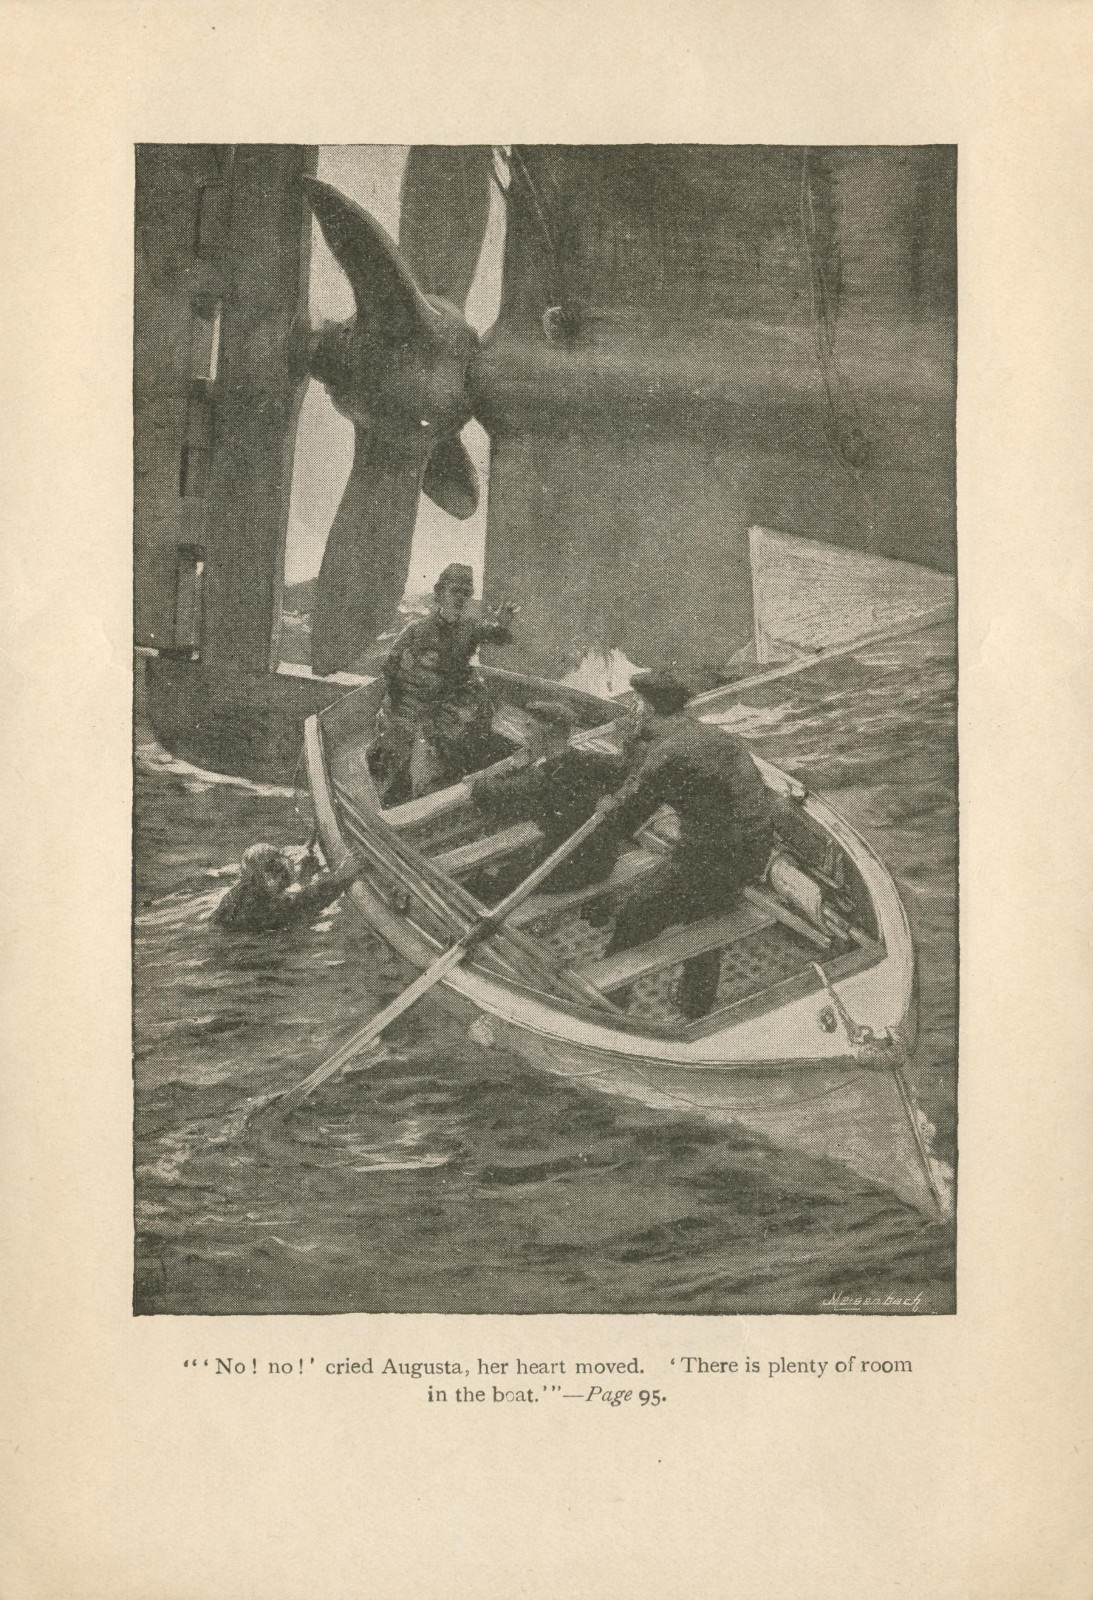 Mrmeesonswill1921frontispiece